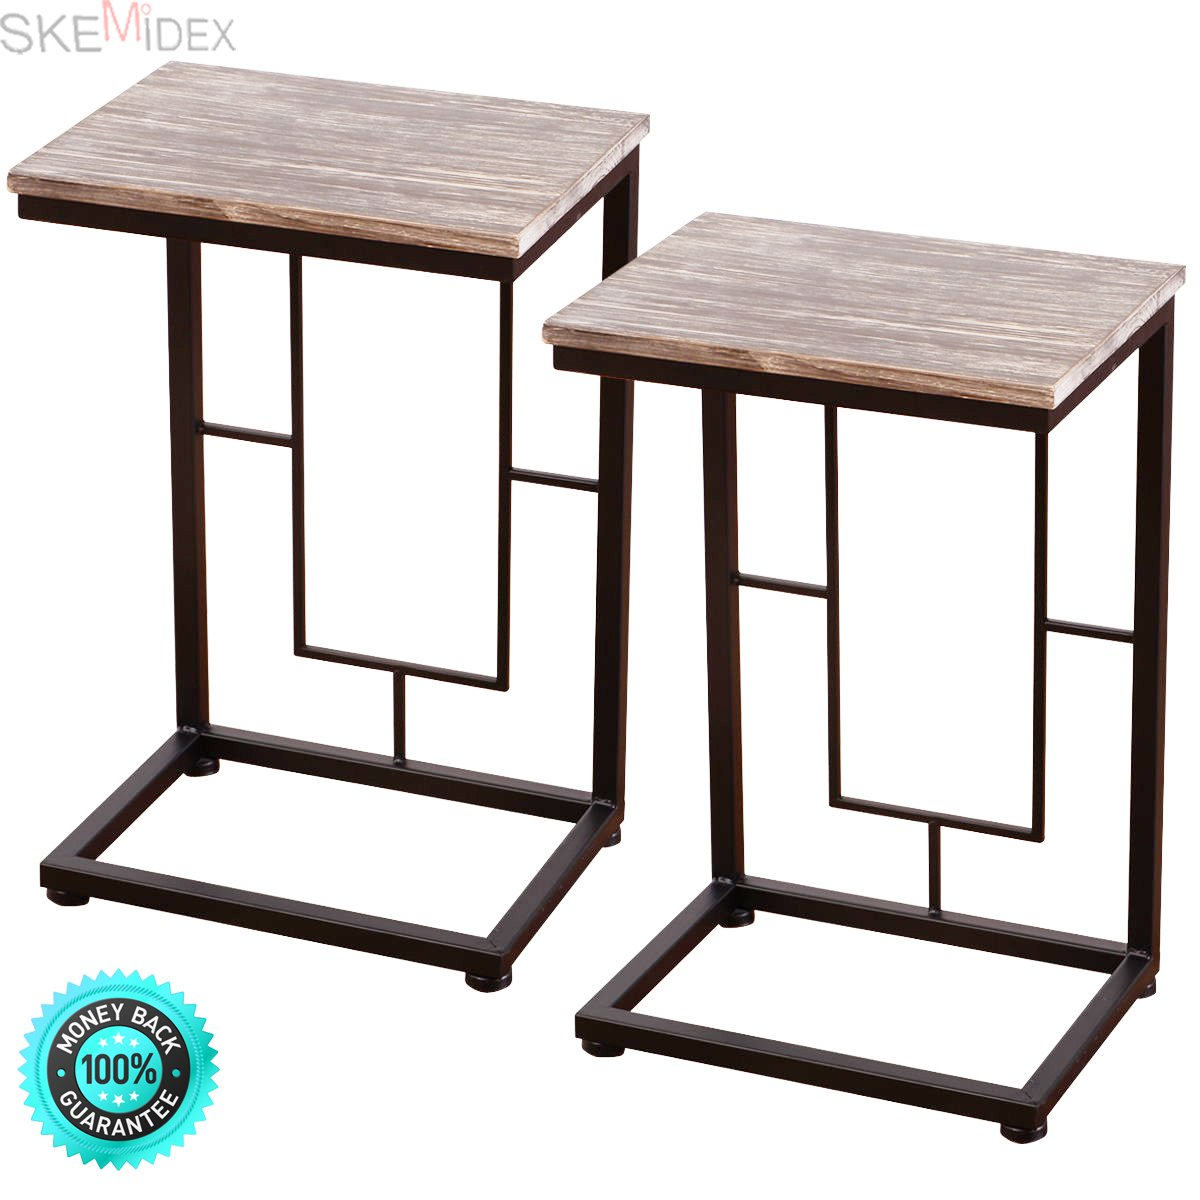 SKEMiDEX-2PCS 21.7'' Wood Coffee Tray Side Sofa End Table Couch Stand Lap Antique Finish. Can be used as end tables, lamp tables, decorative displays tables, or simply accent pieces by SKEMiDEX